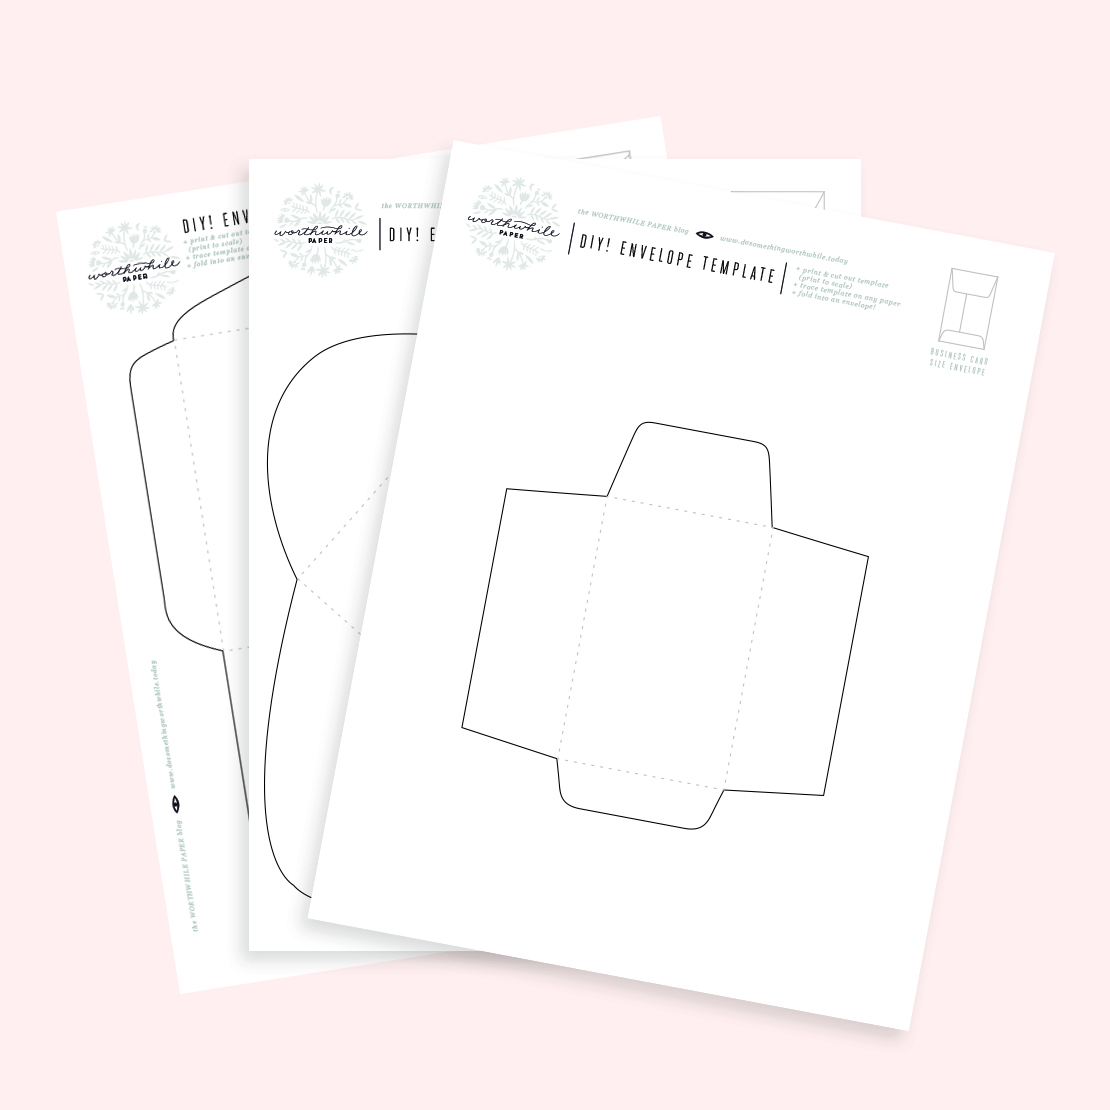 photo relating to Free Printable Envelope Templates referred to as Do-it-yourself: Envelopes! With absolutely free printable templates